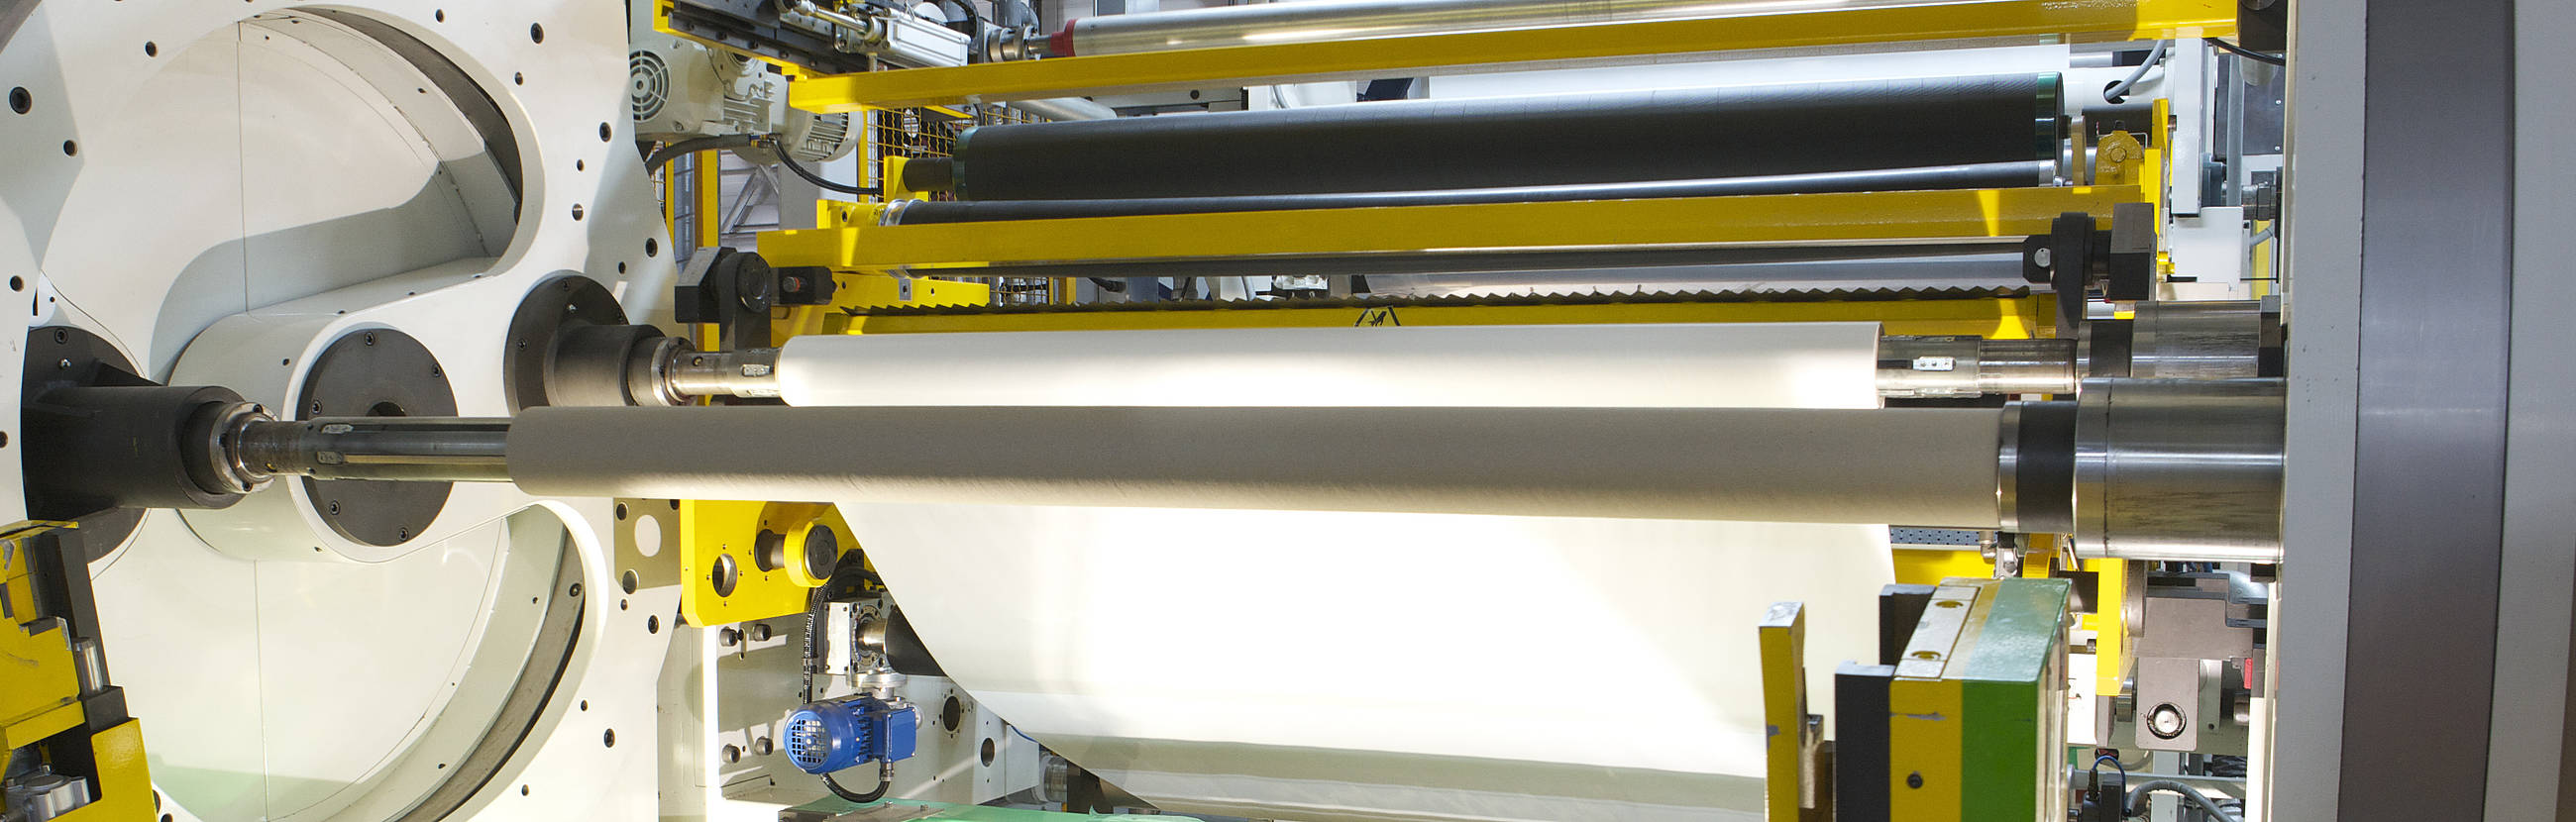 Adhesives coating lines for emulsion and solvent glues ...